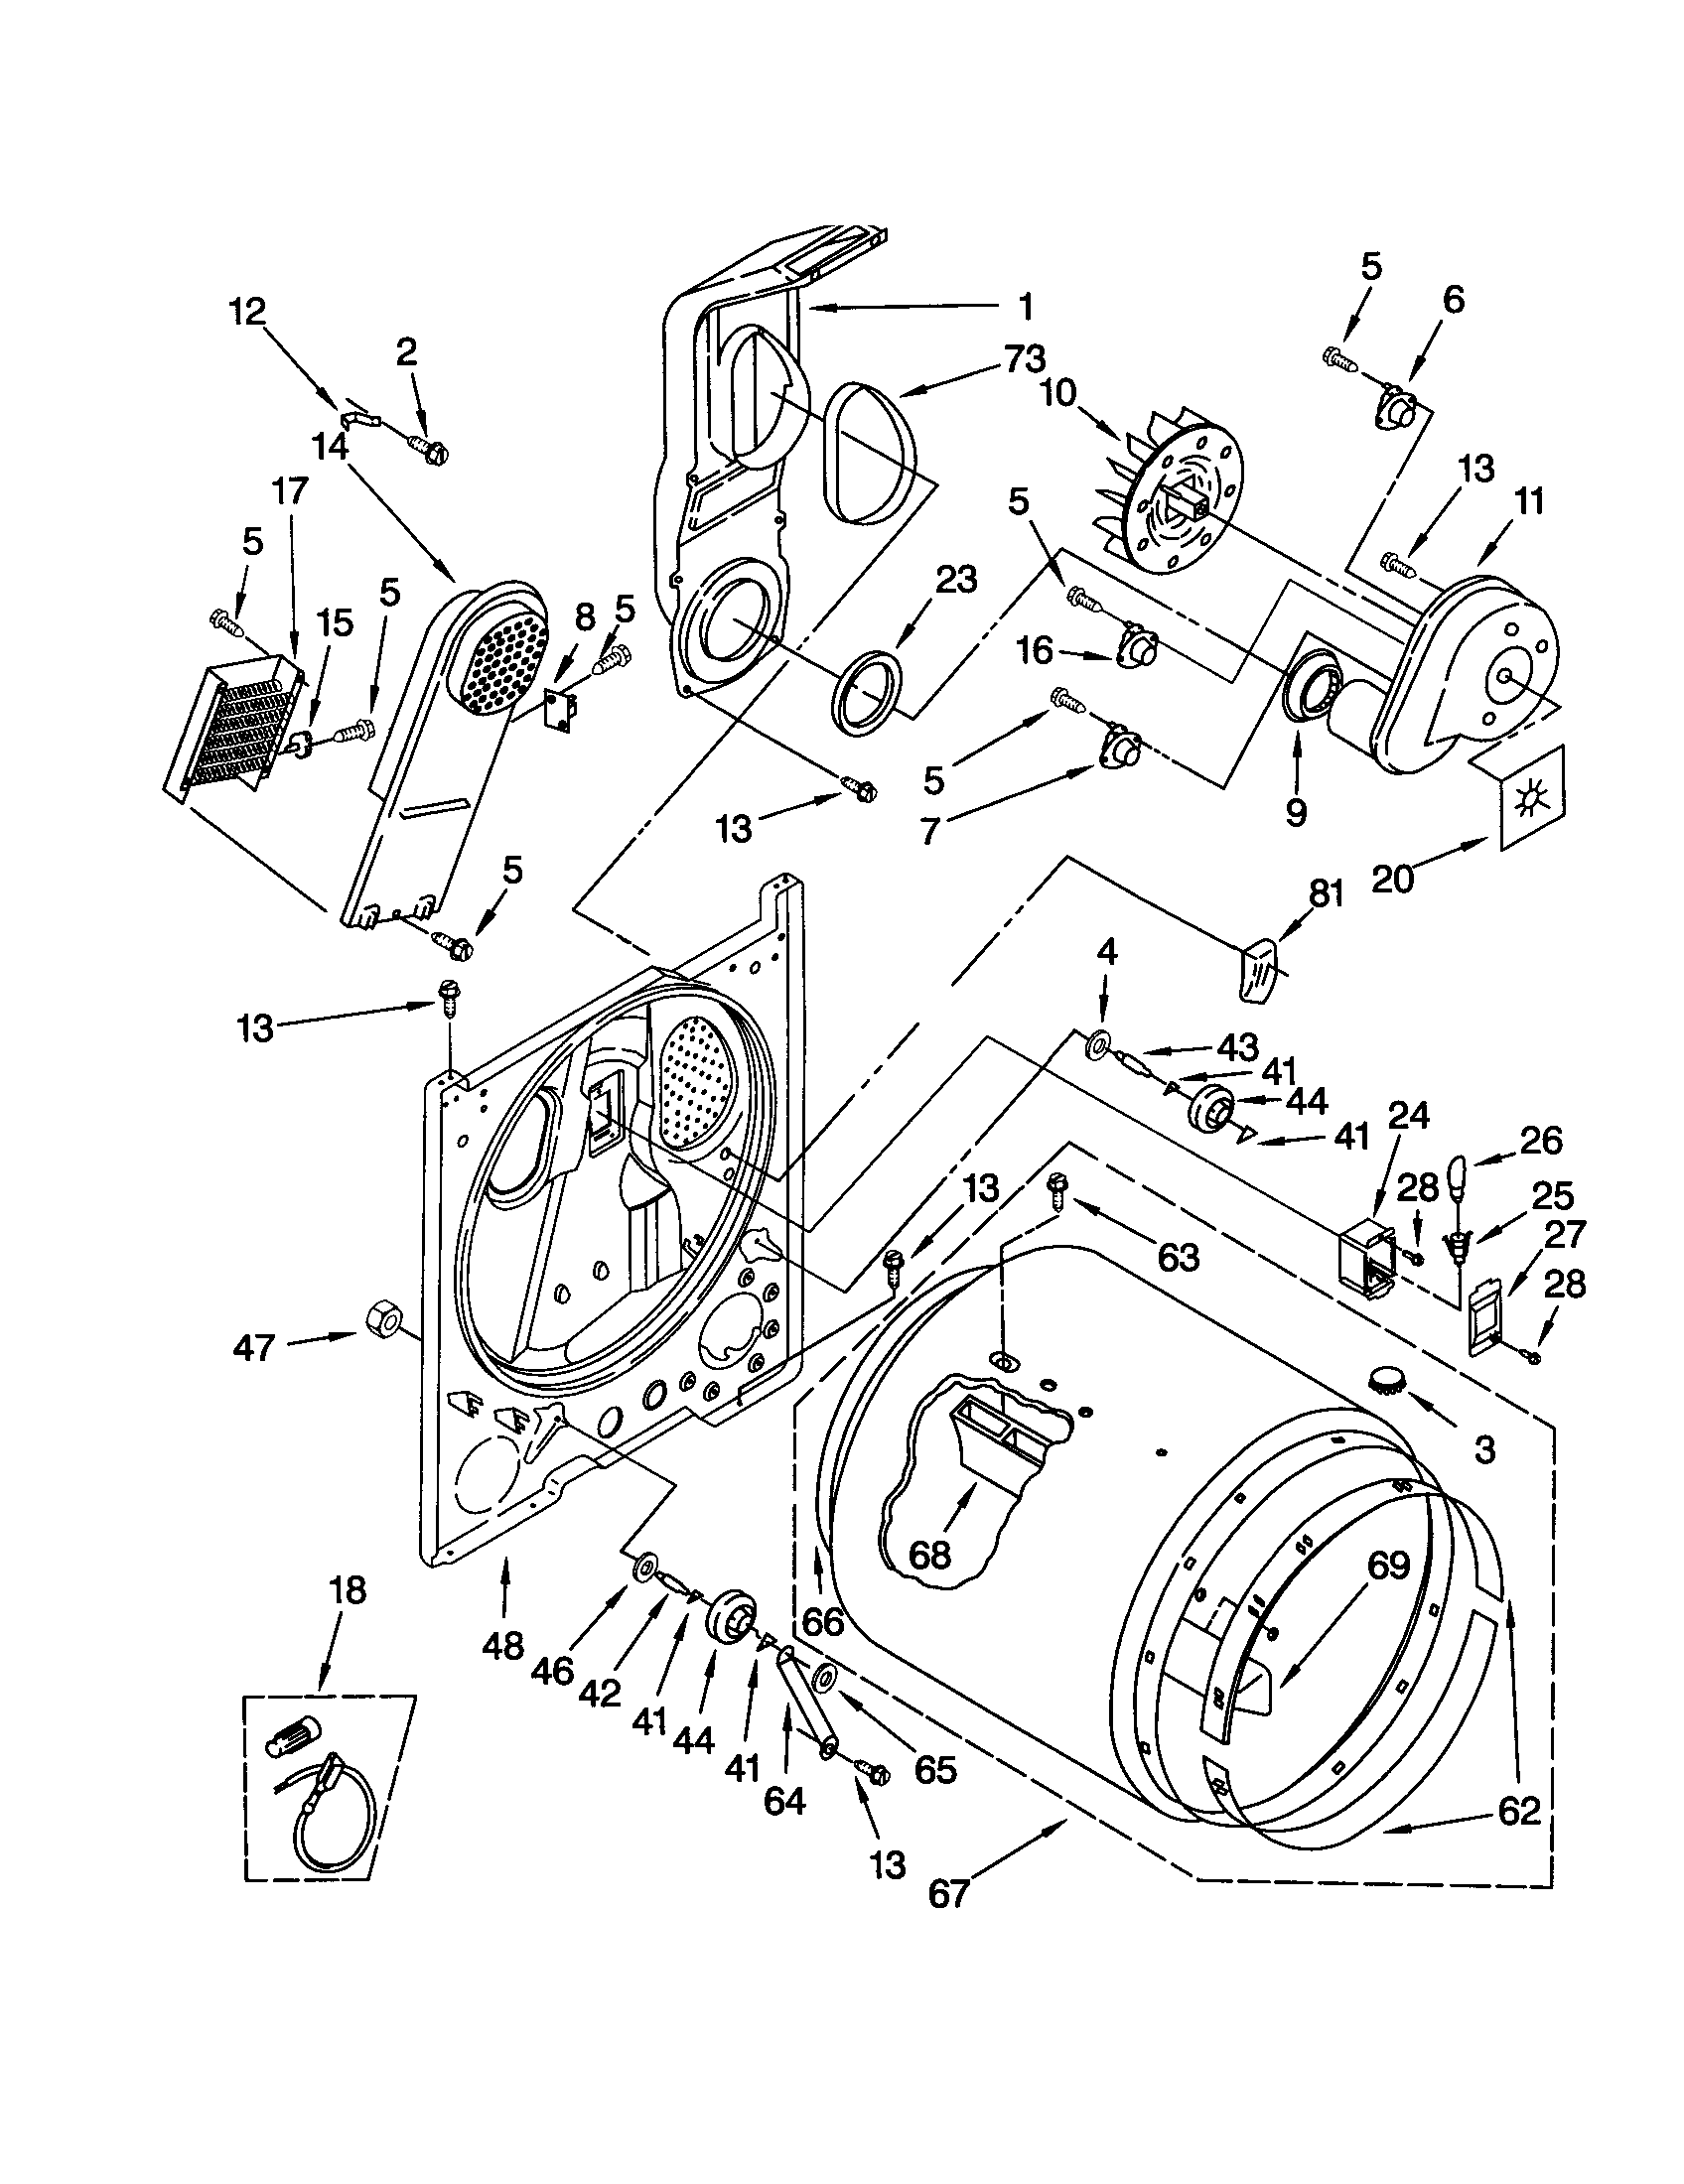 Heater Diagram And Parts List For Maytag Dryerparts Model